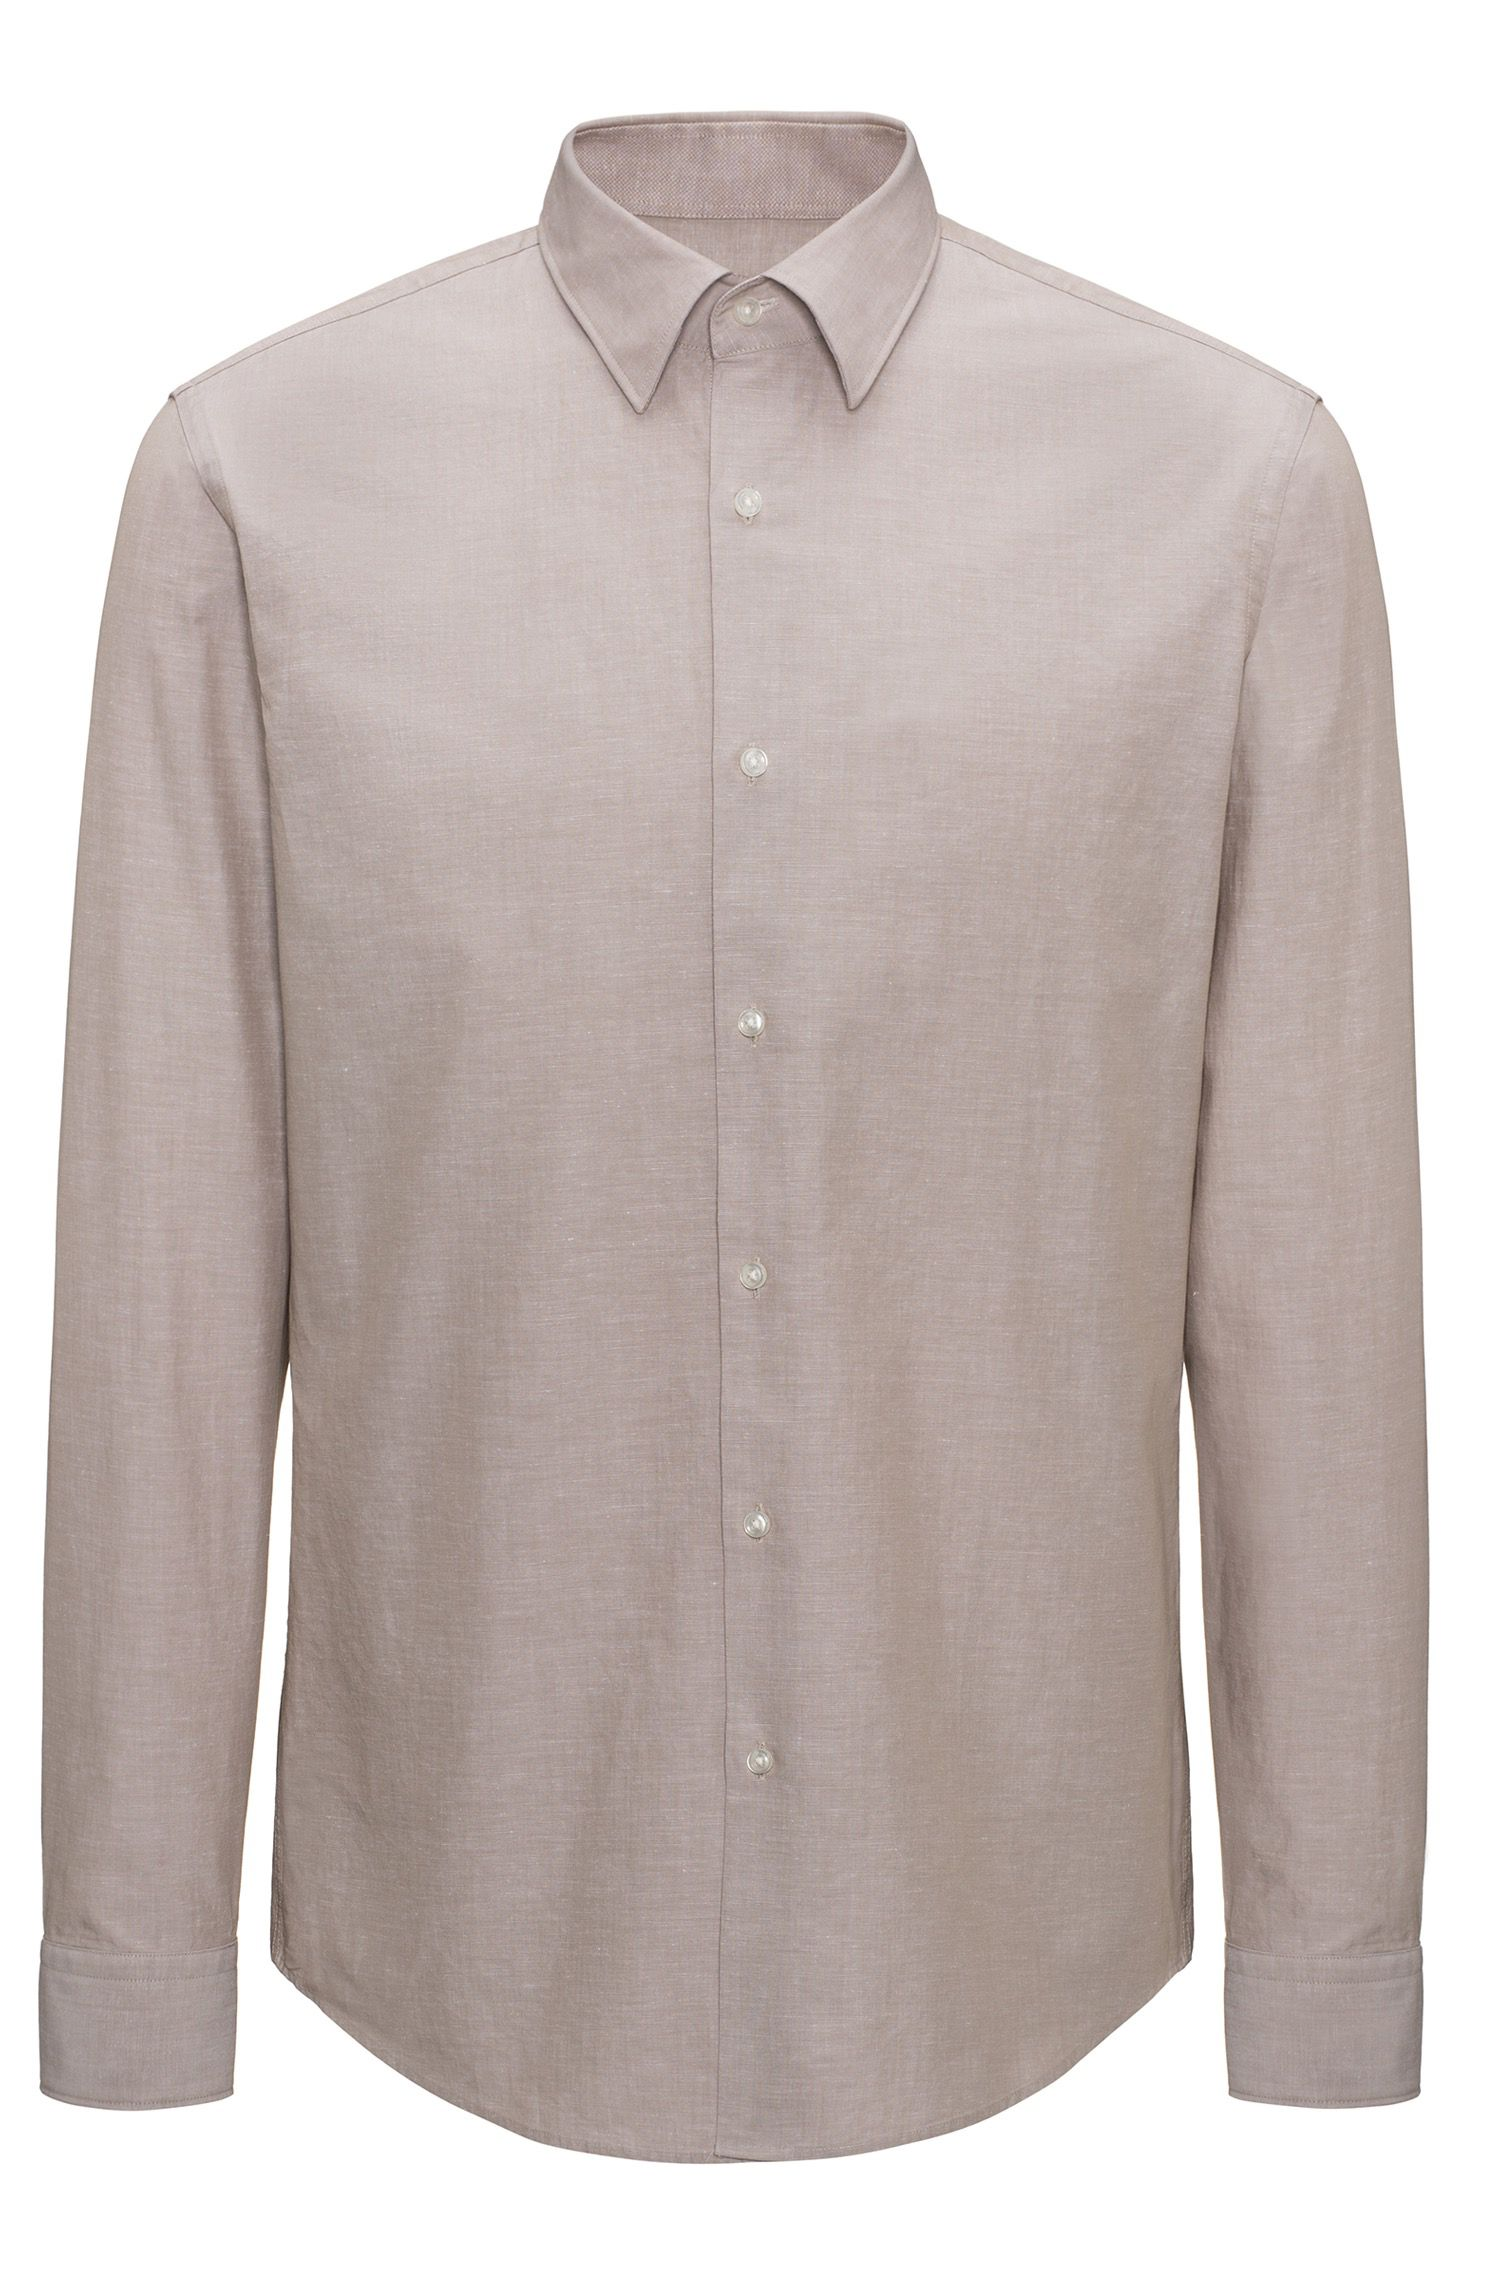 Regular-fit shirt in a cooling cotton blend